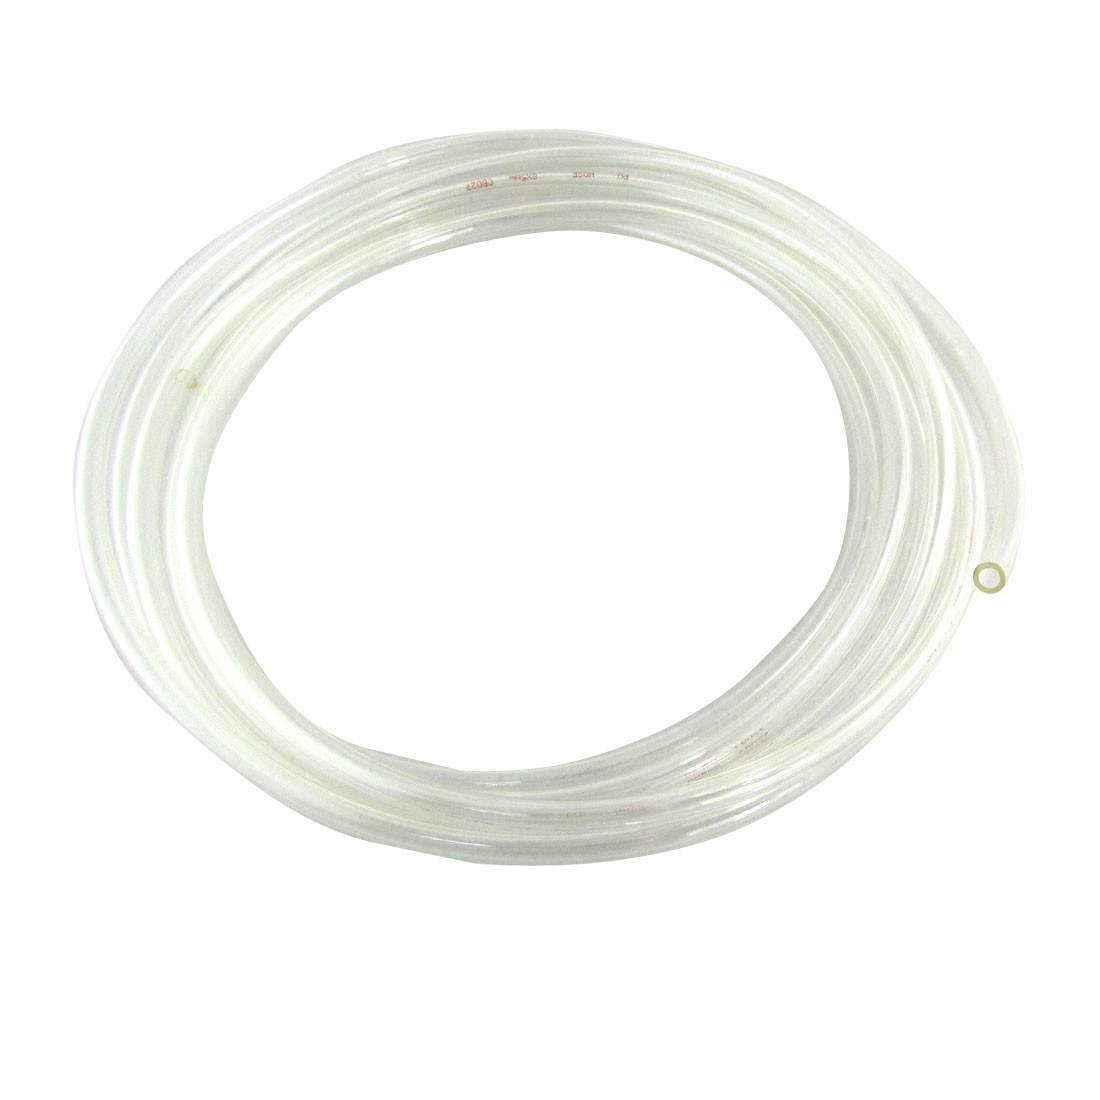 4M 13.1 Ft 8mm x 5mm Pneumatic PU Recoil Air Hose Tube Clear